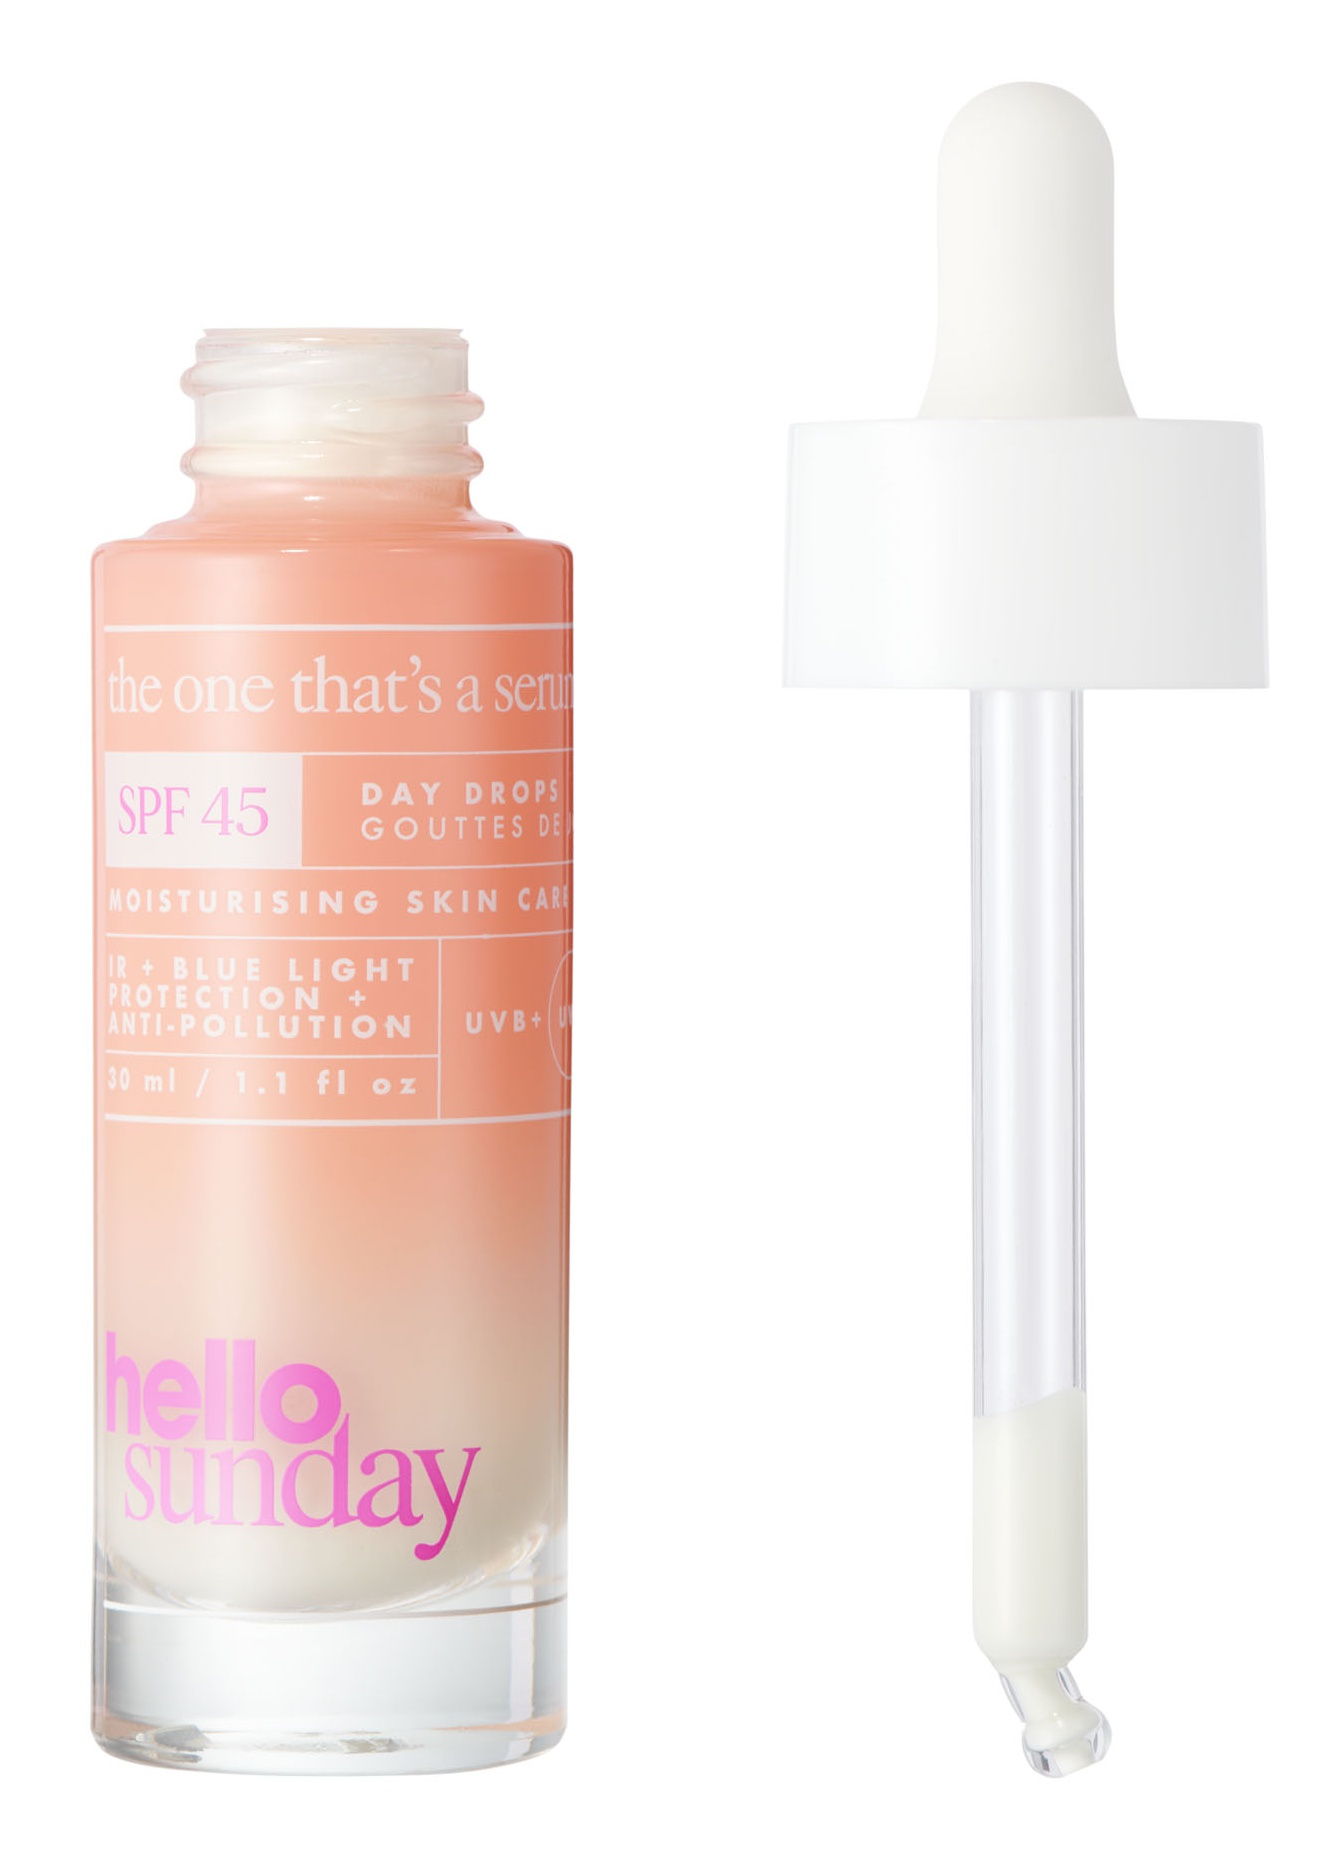 Hello Sunday The One That'S A Serum - Full Shield Drops SPF45